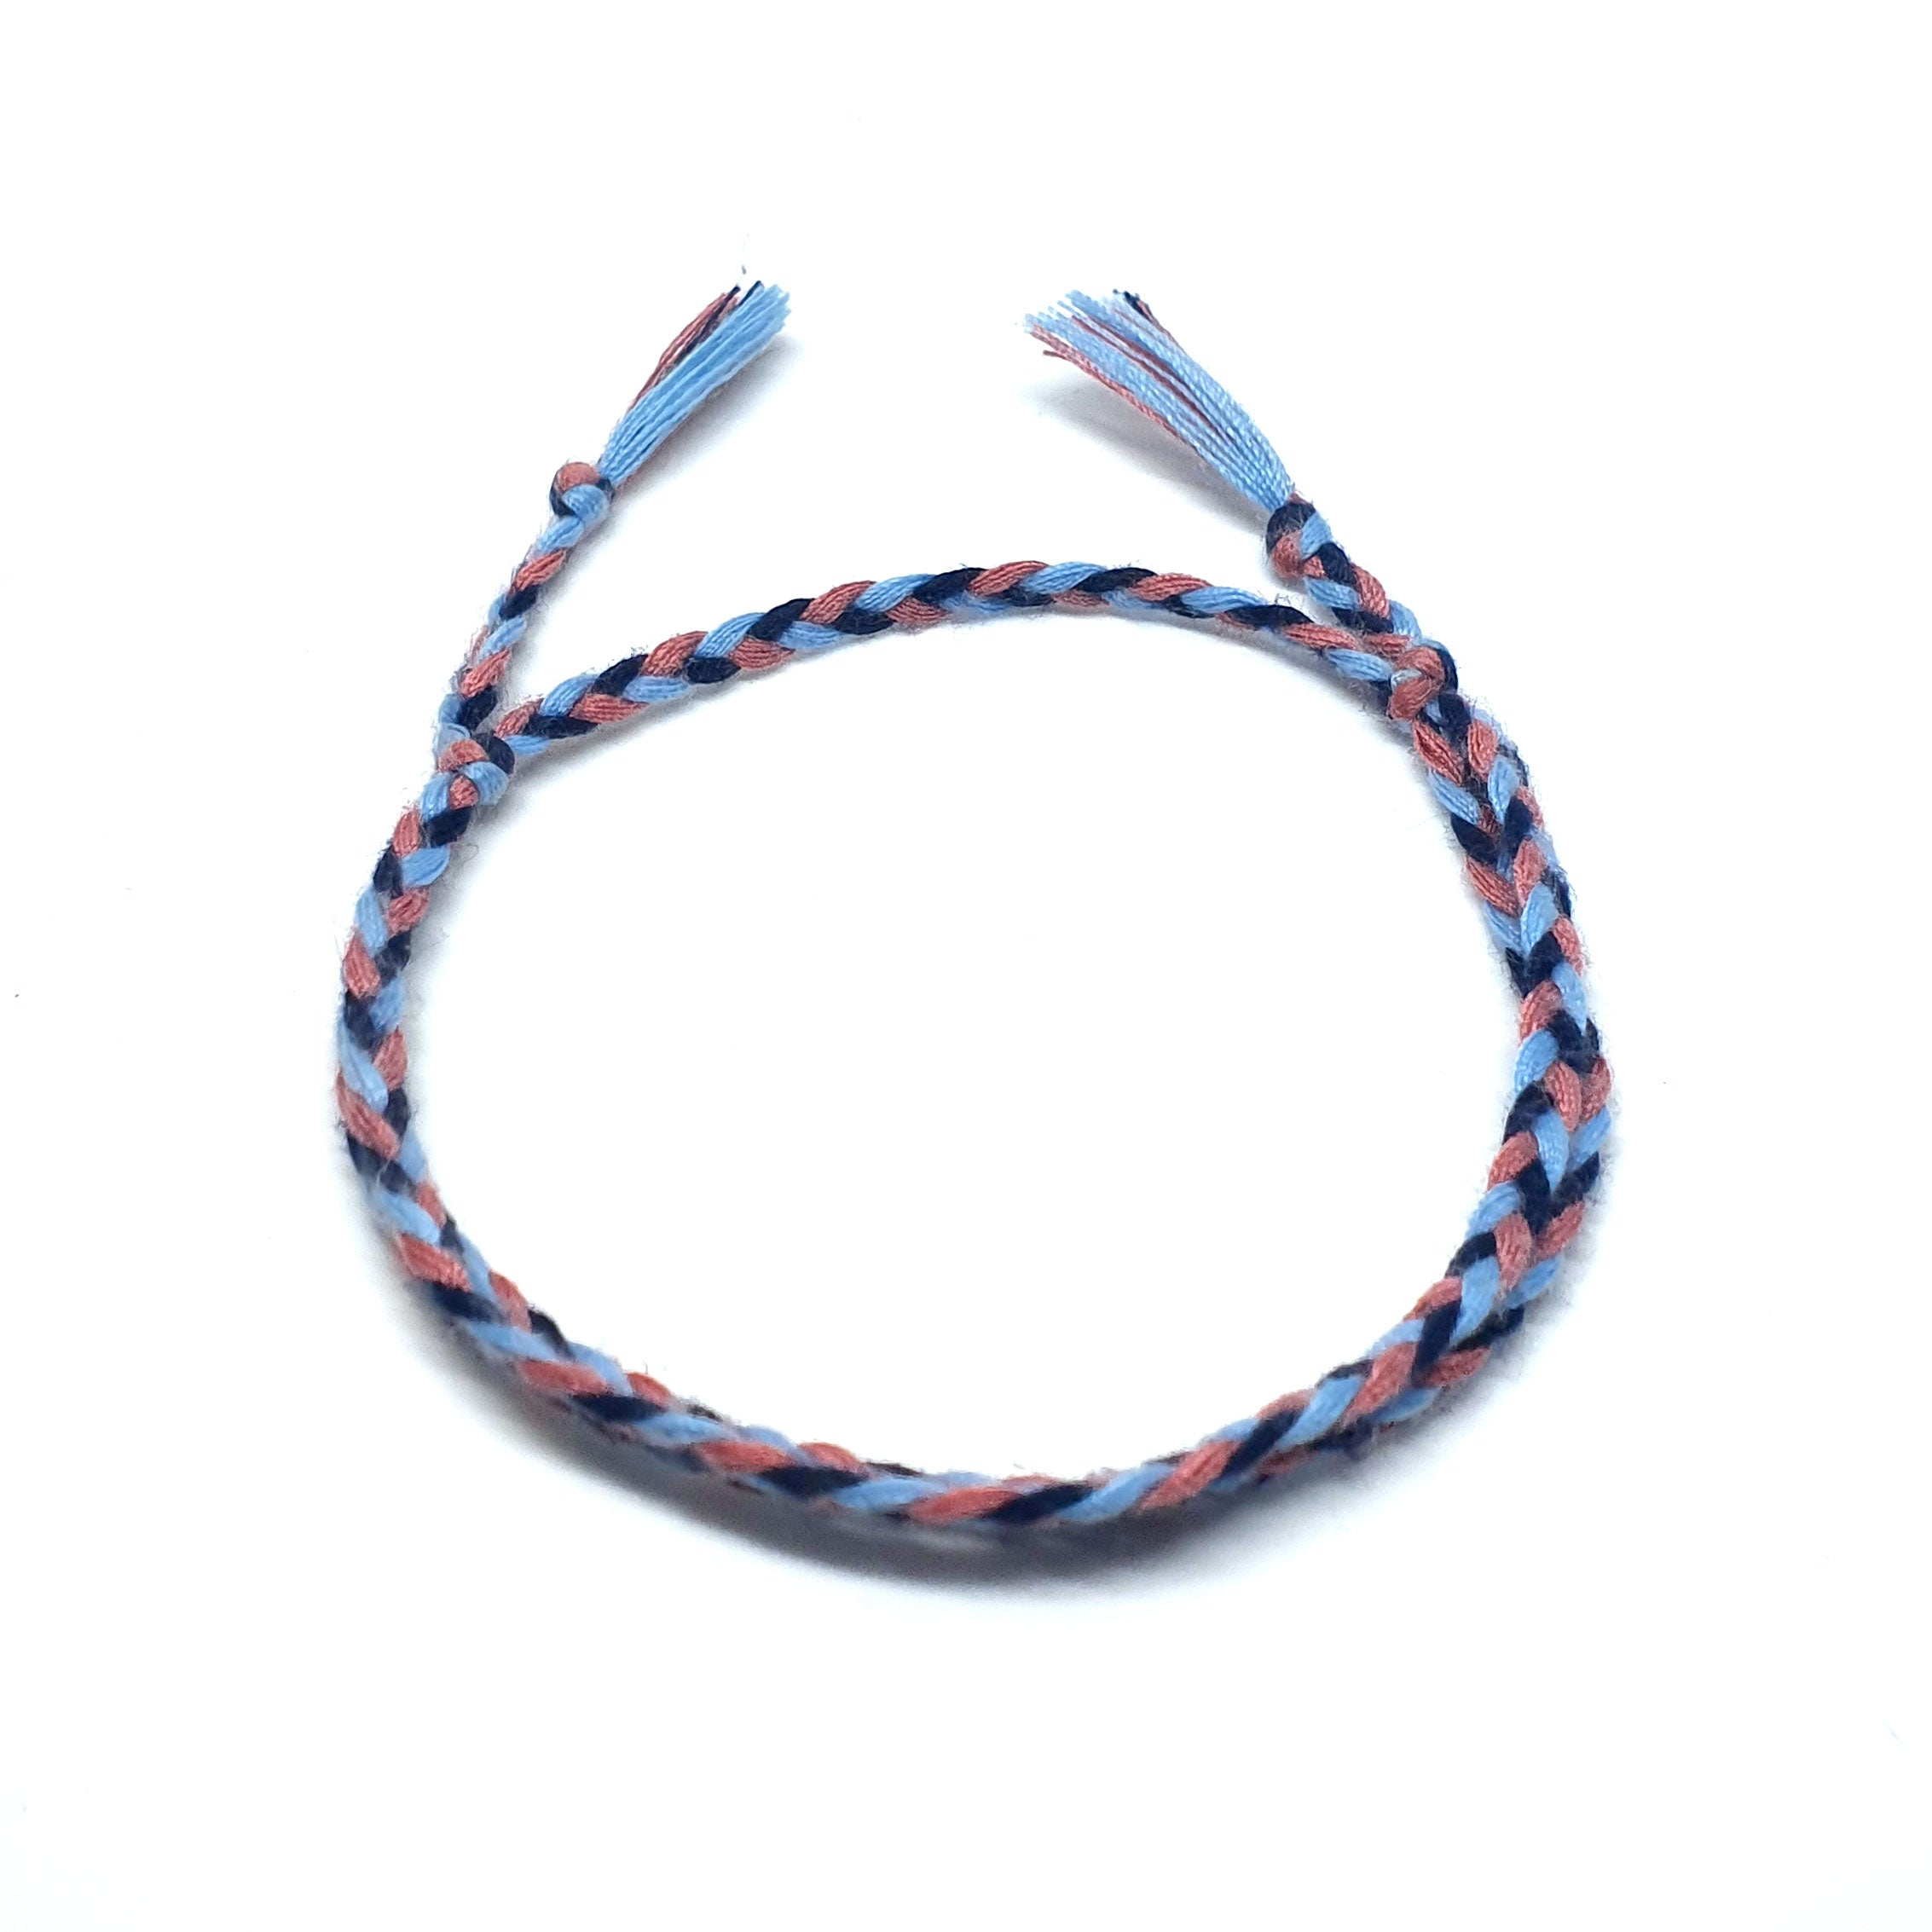 3 colour braided cotton bracelet